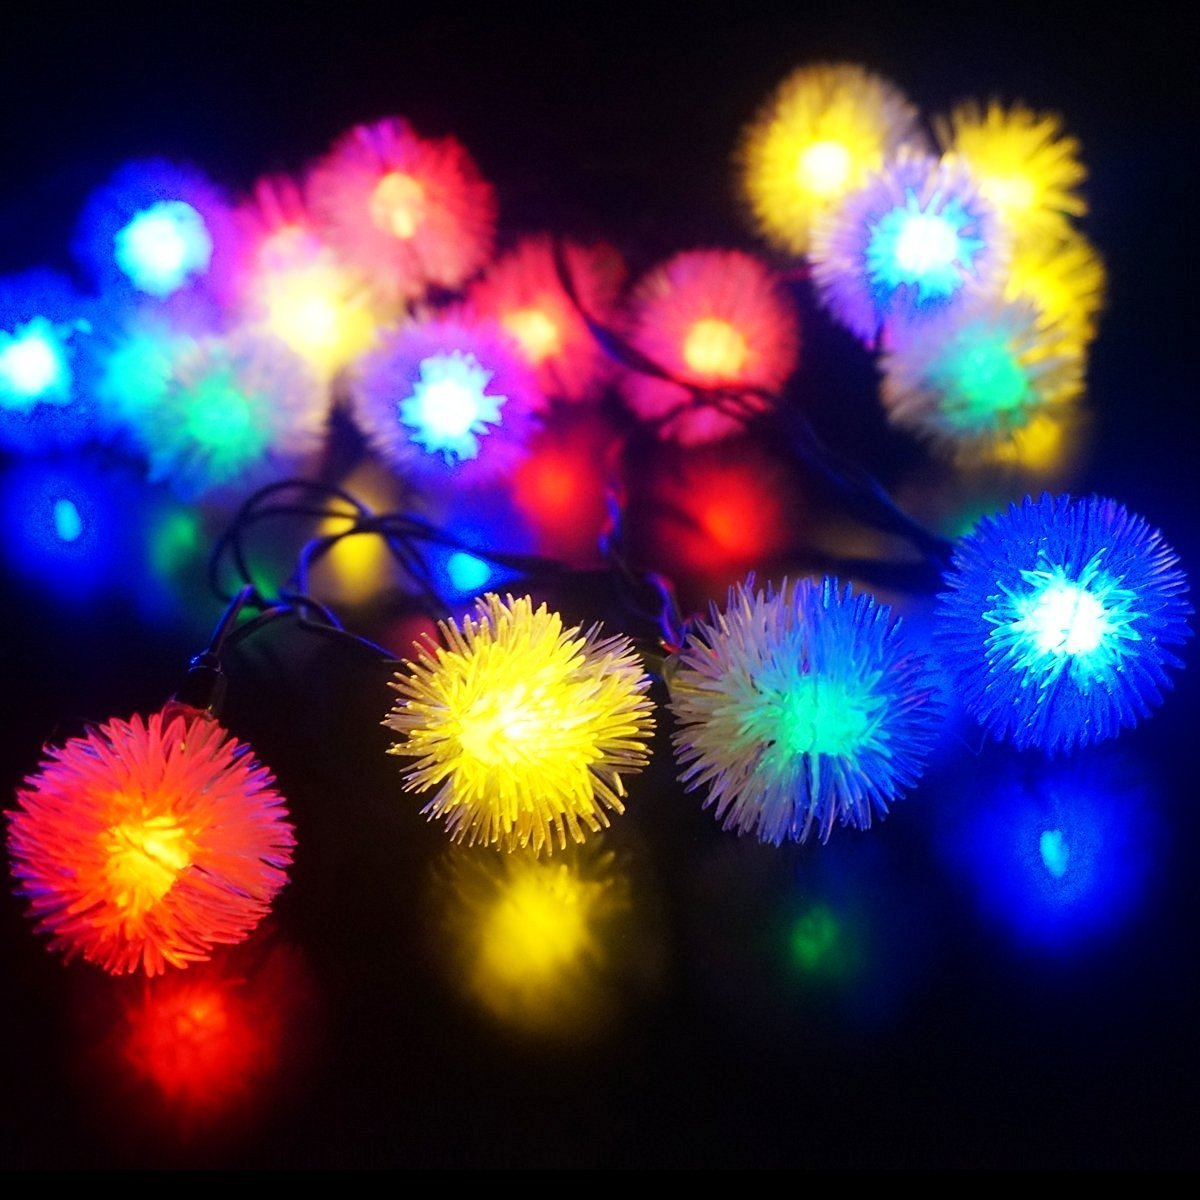 fashionlite solar lights 50 leds chuzzle ball solar powered string lights outdoor christmas lights garden yard - Solar Powered Outdoor Christmas Decorations